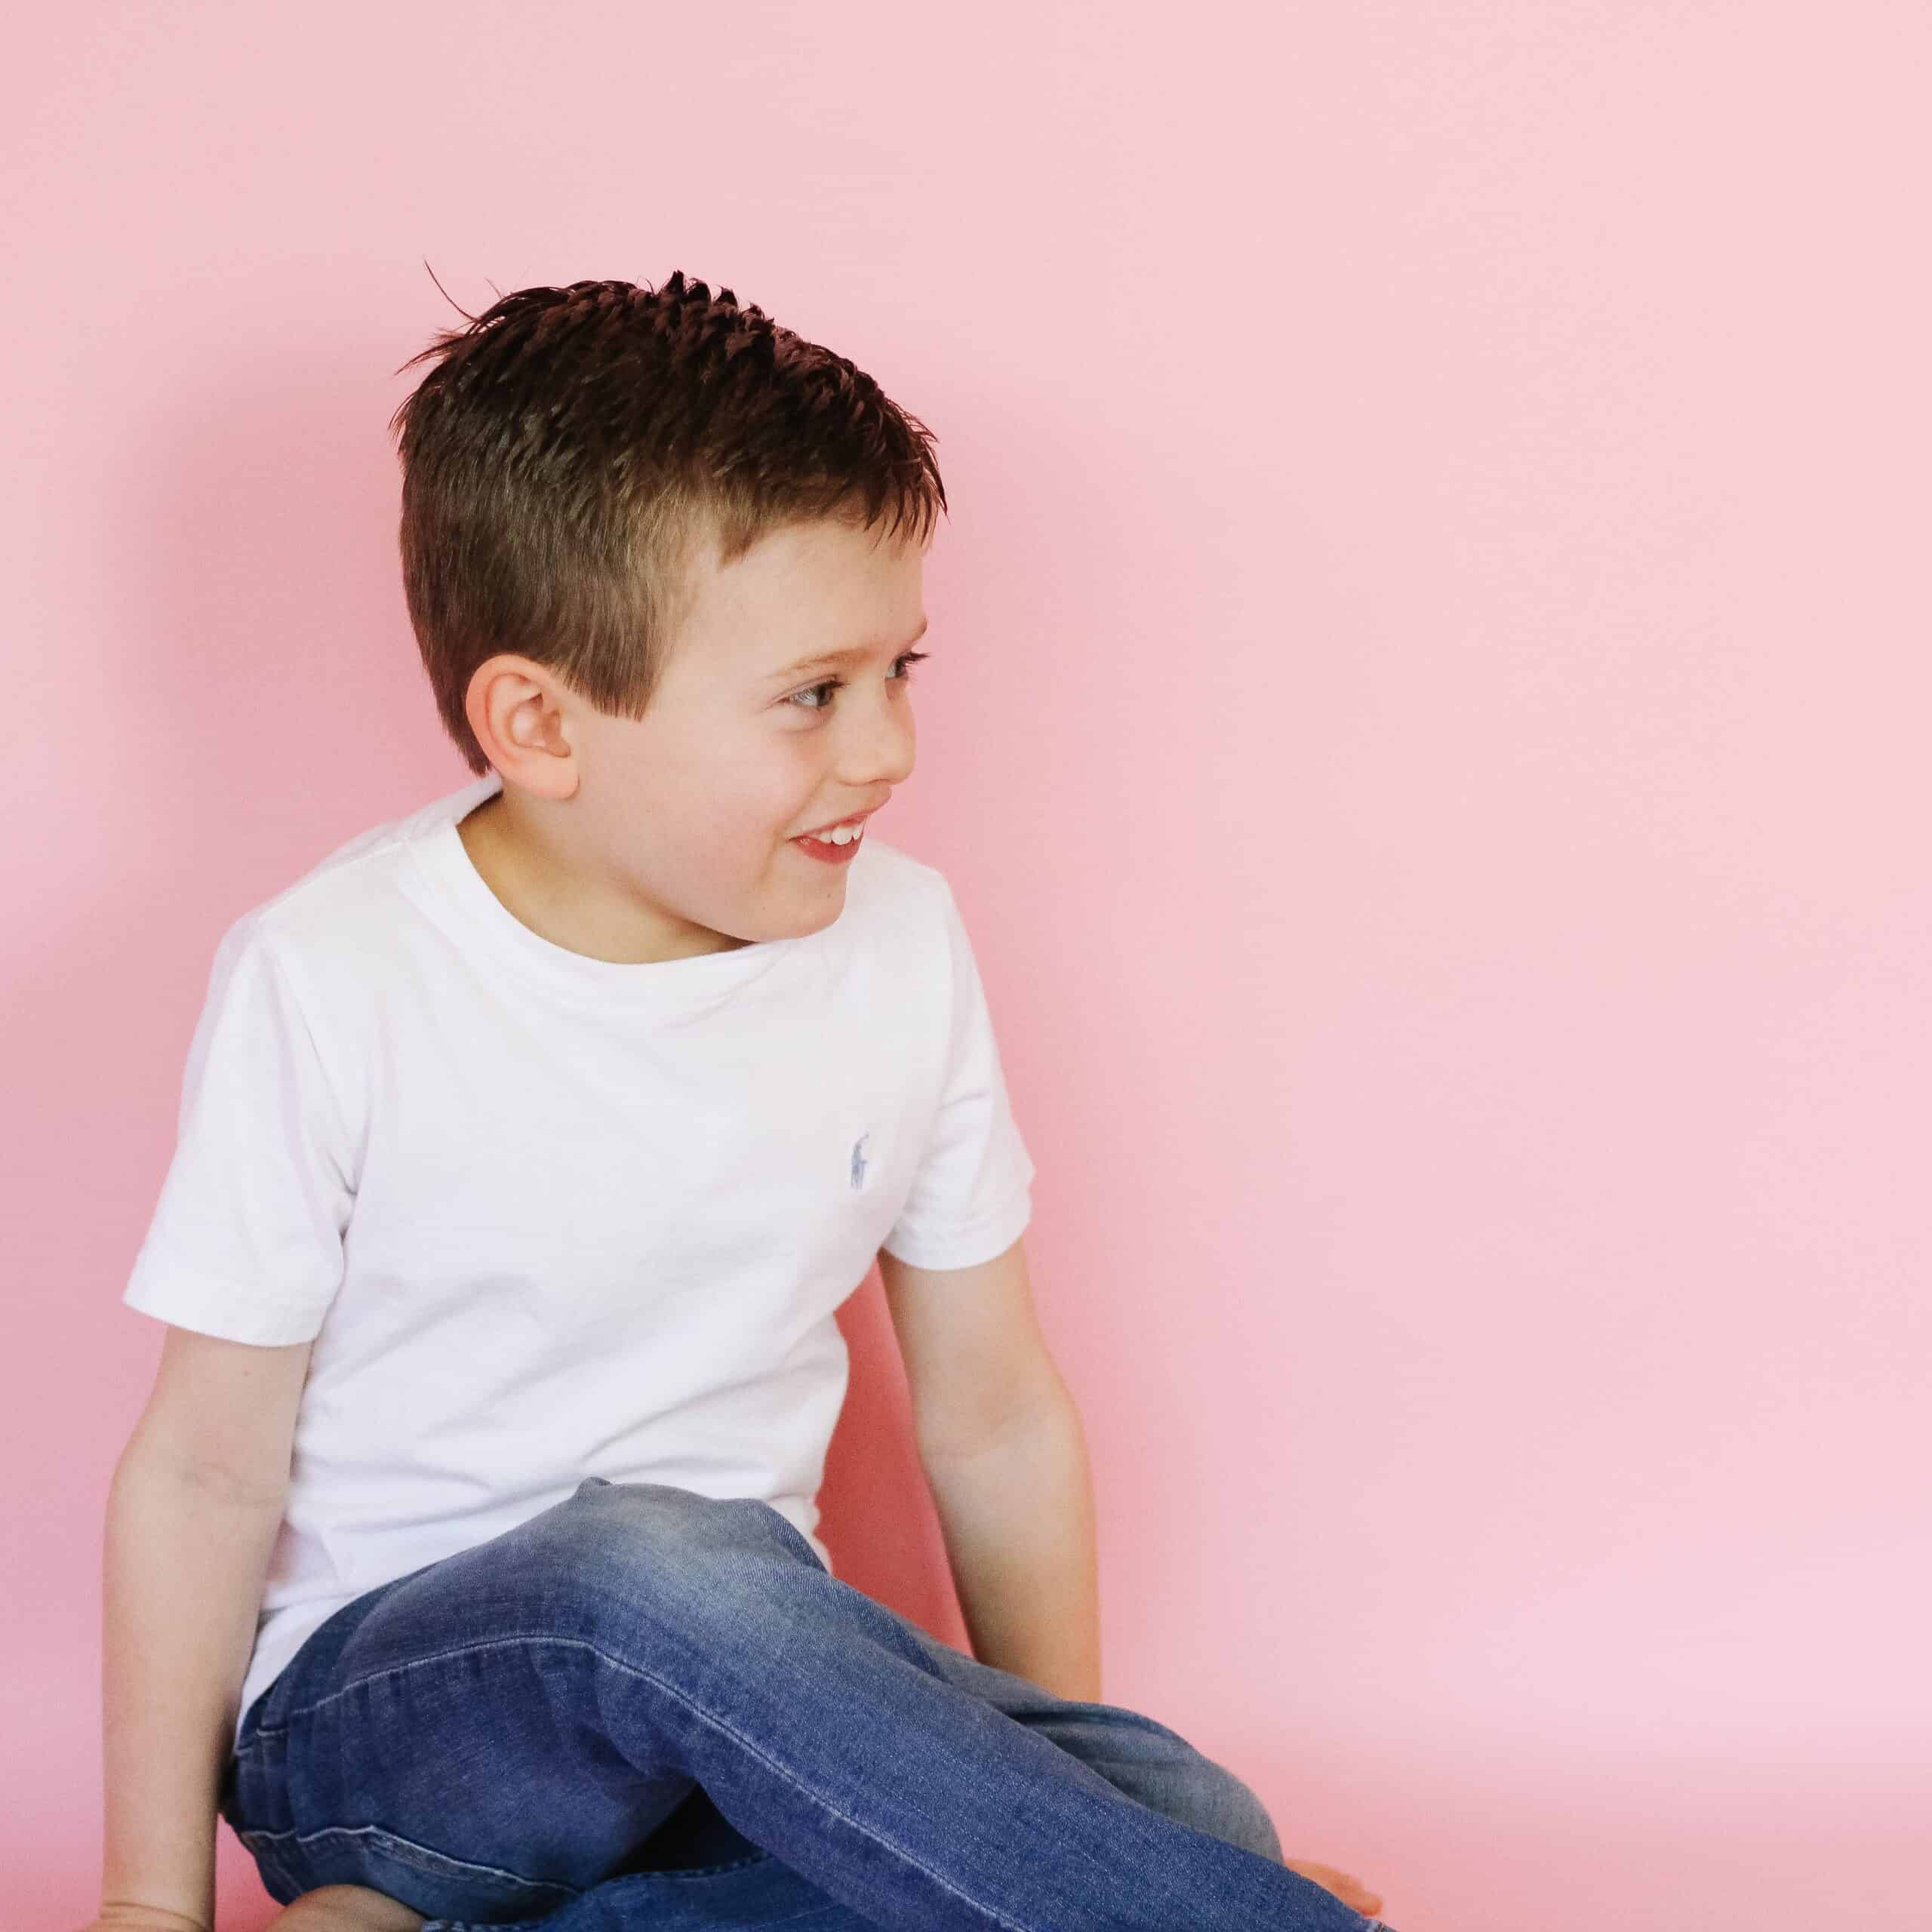 5 year old boy on pink background